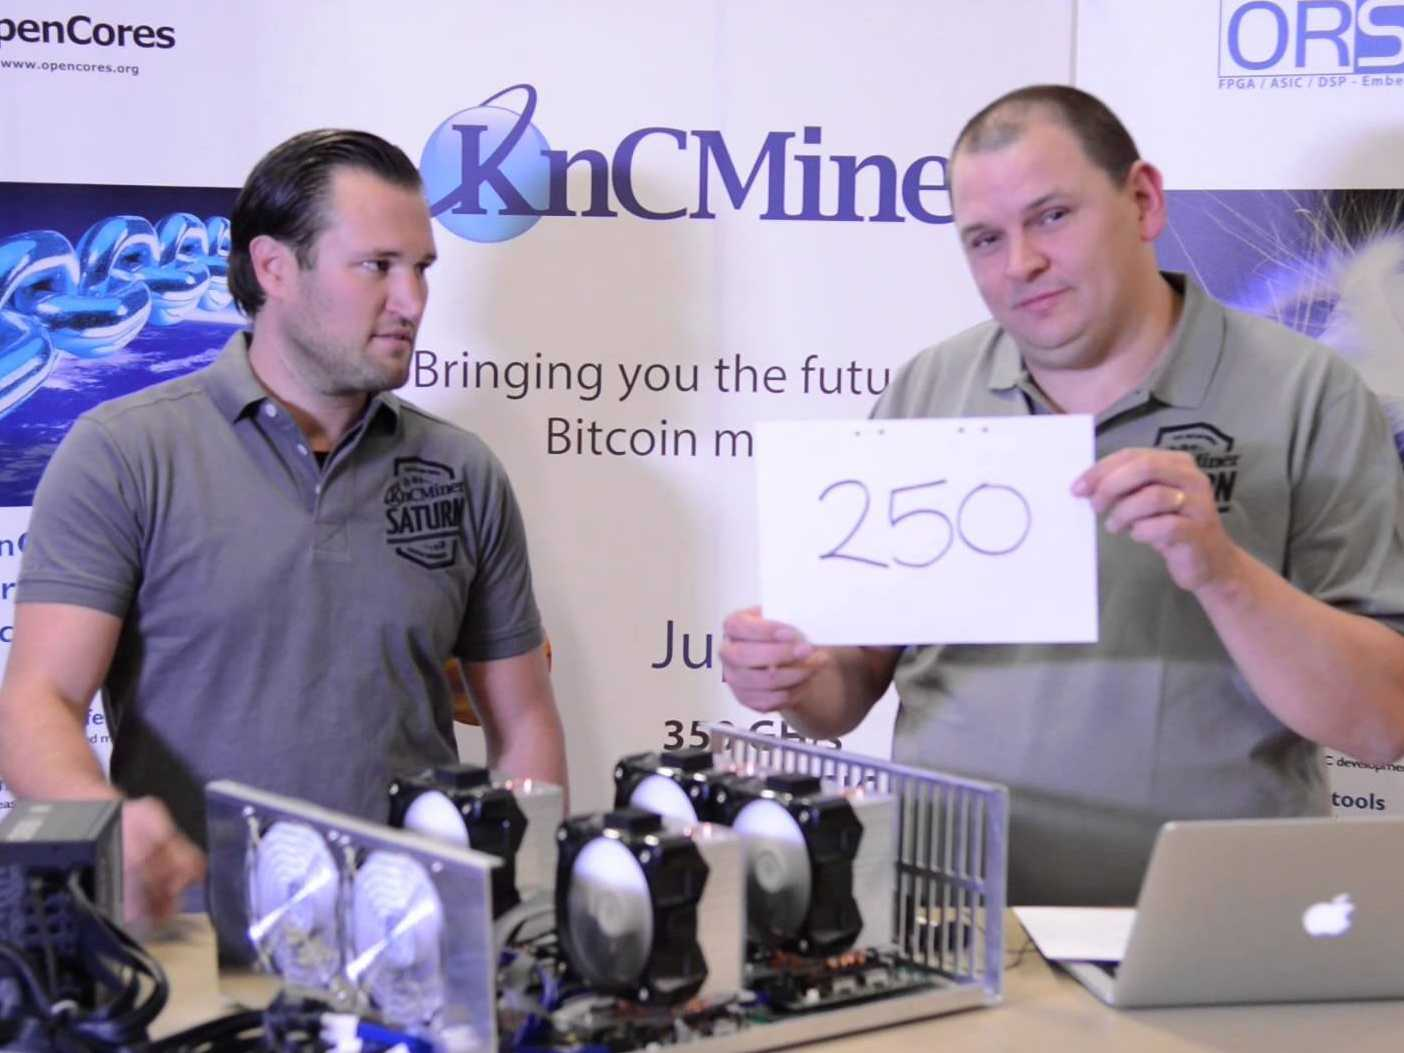 Sweden's KnCMiner earns $3 million-plus in just four days